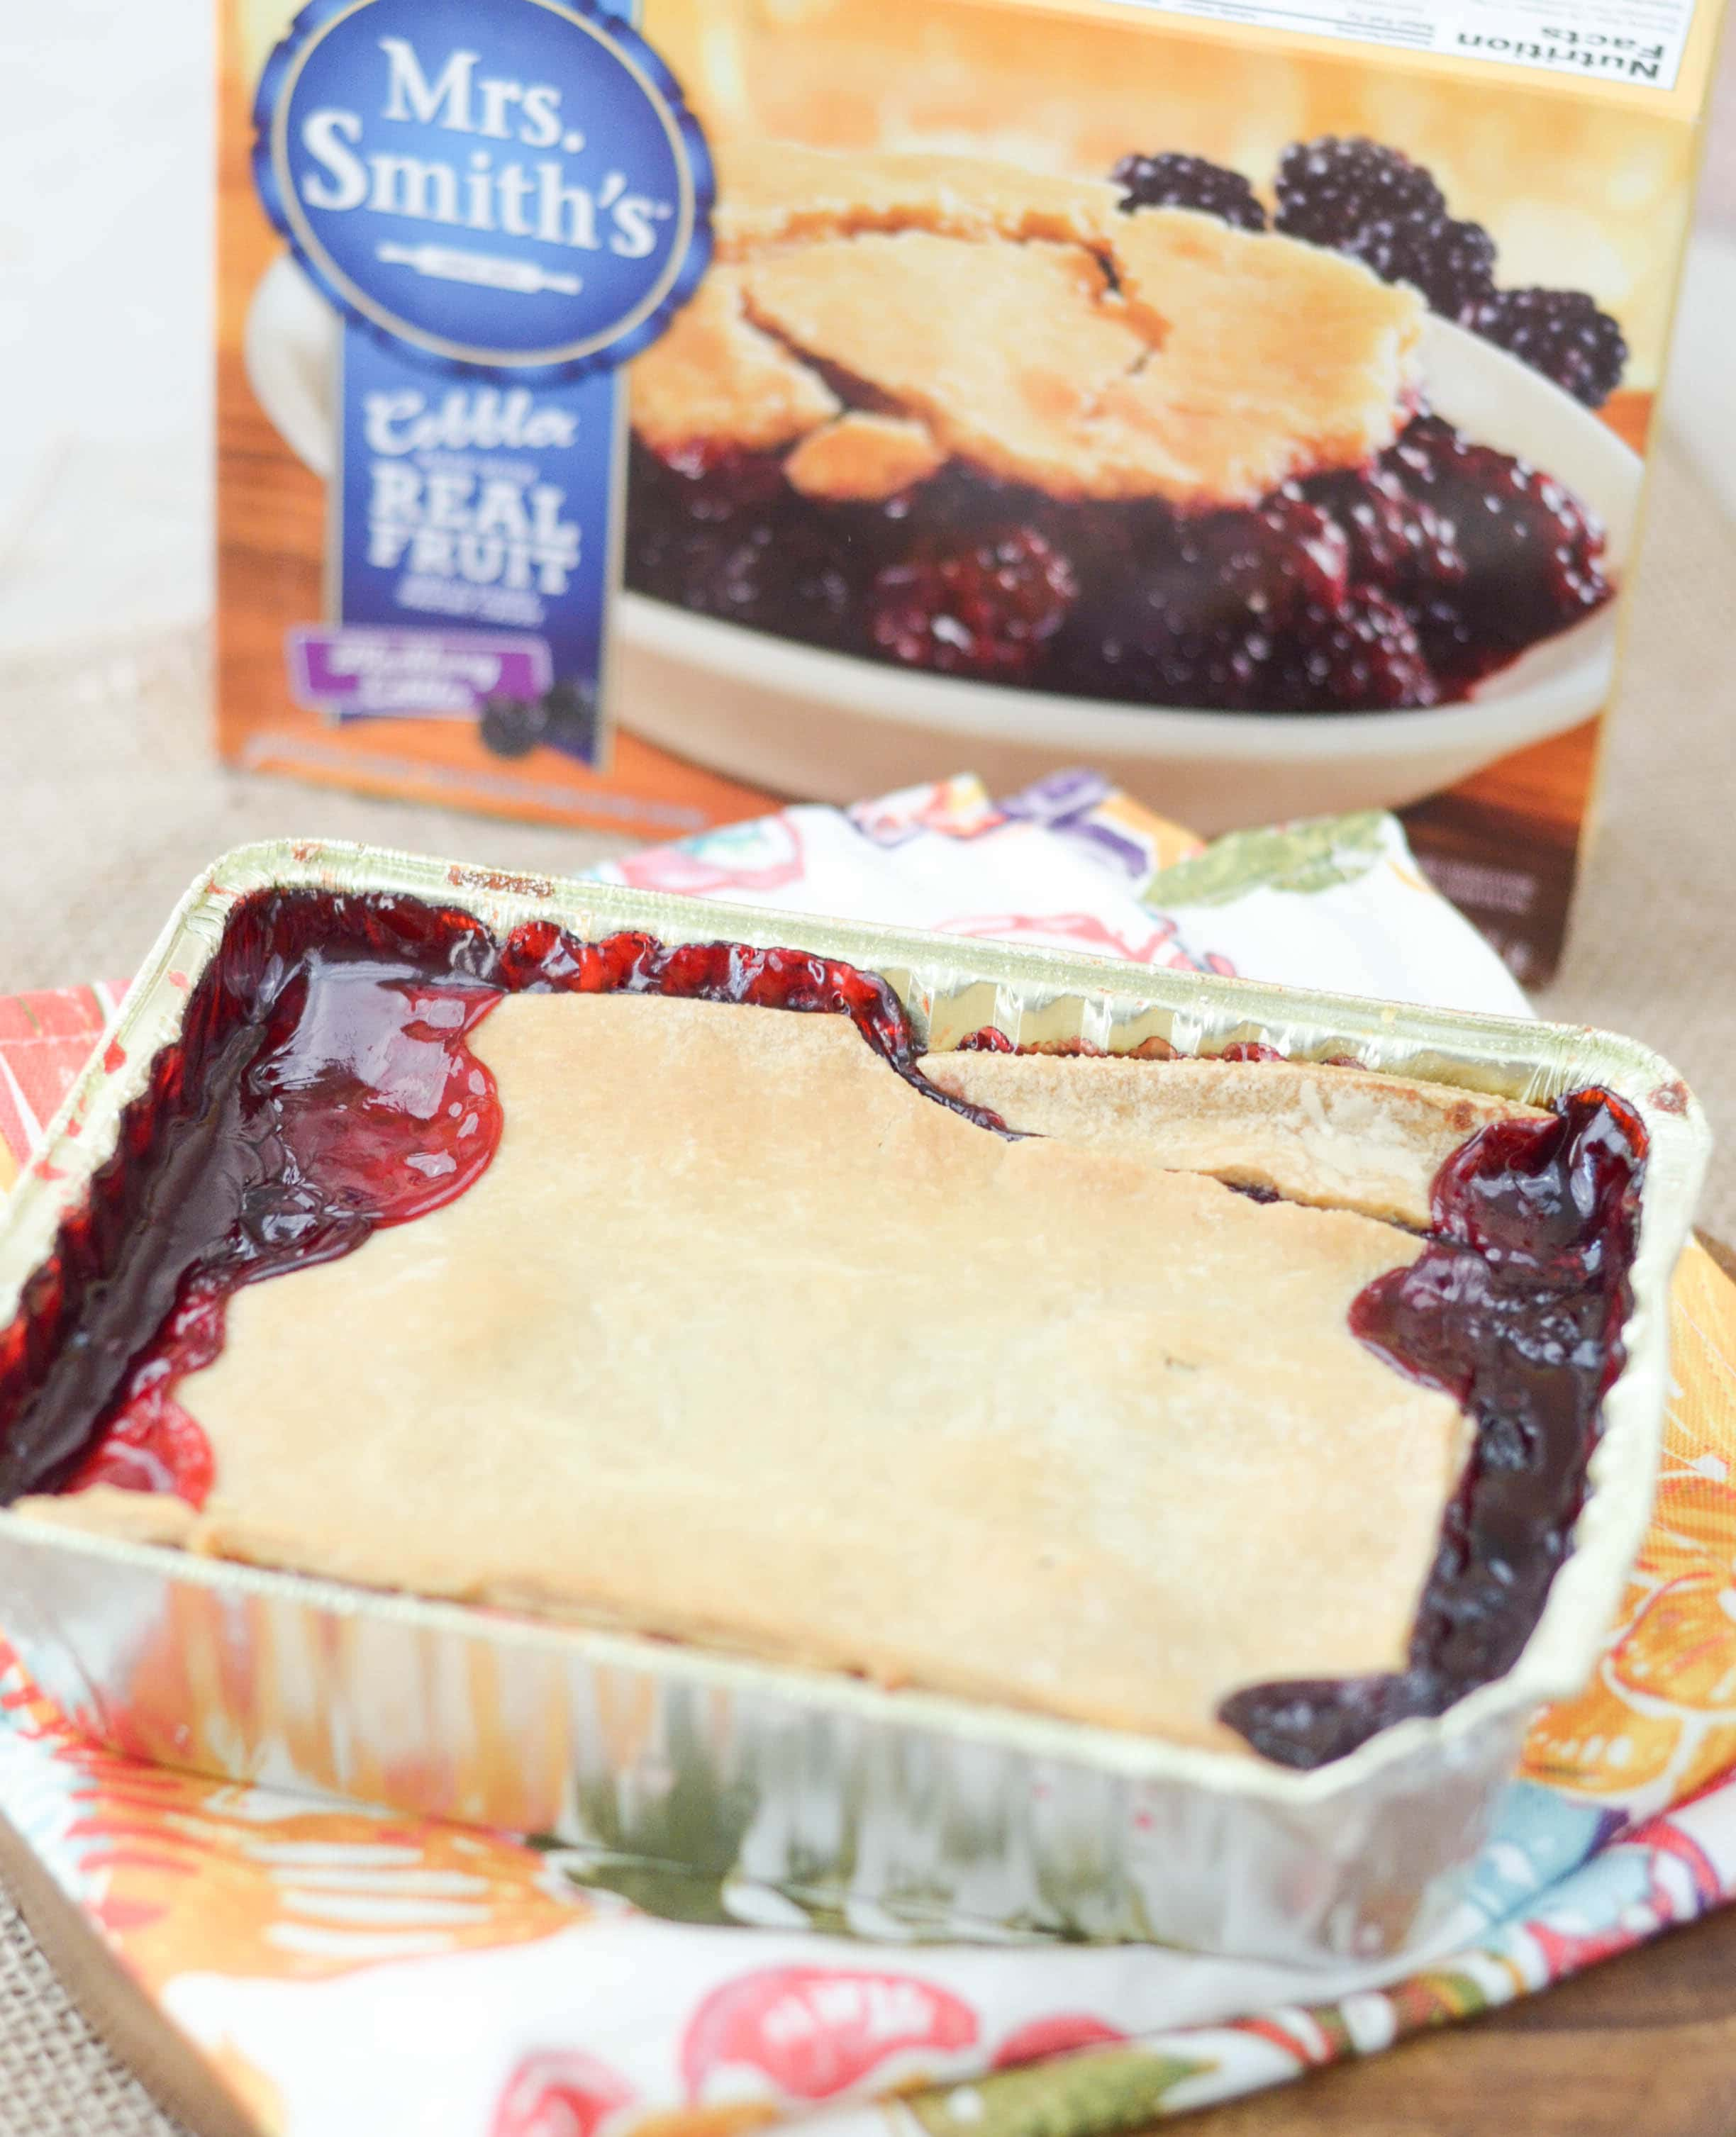 ... ? Then, you are in luck with this Blackberry Cobbler Ice Cream Cake